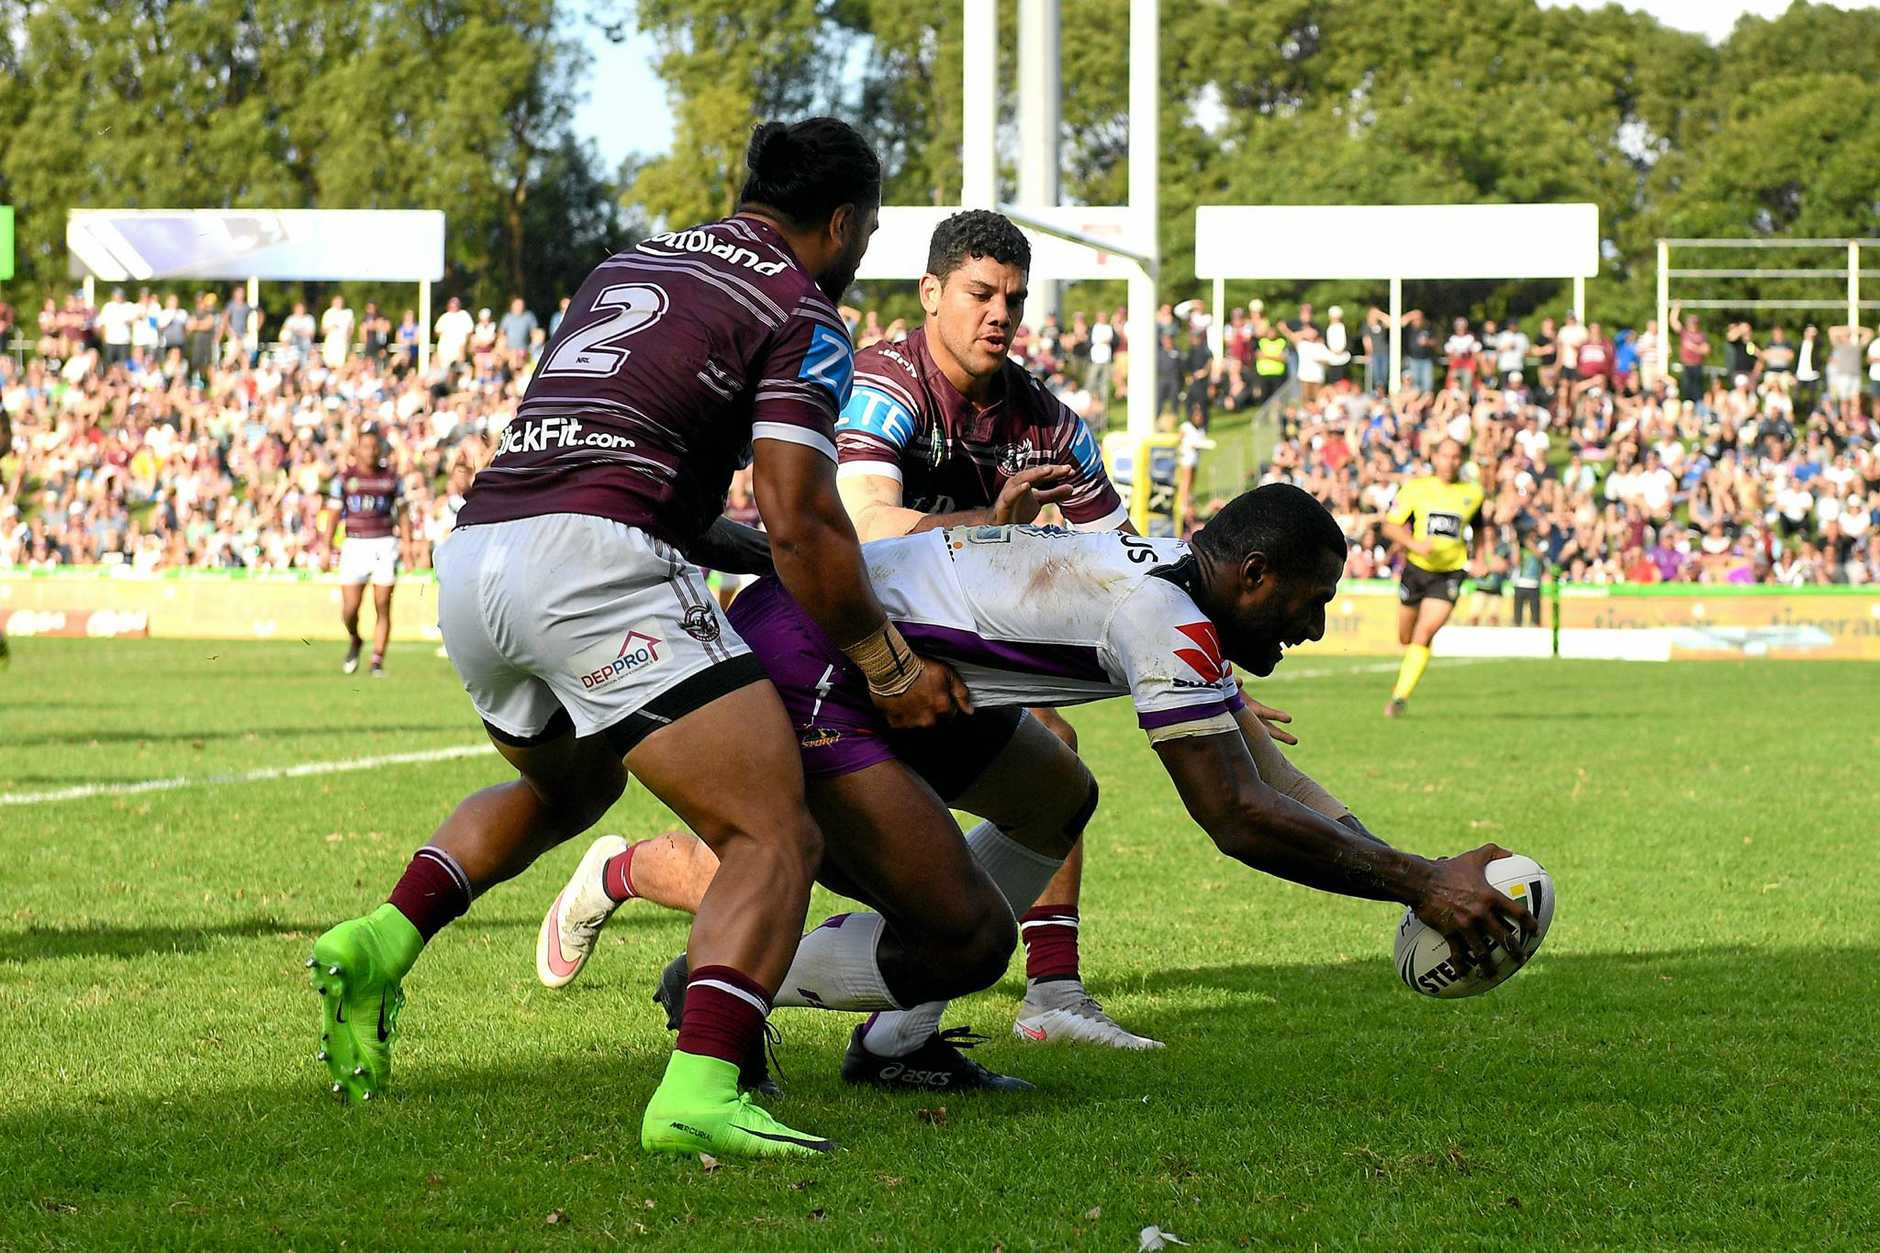 Suliasi Vunivalu of the Storm scores a try against Manly.